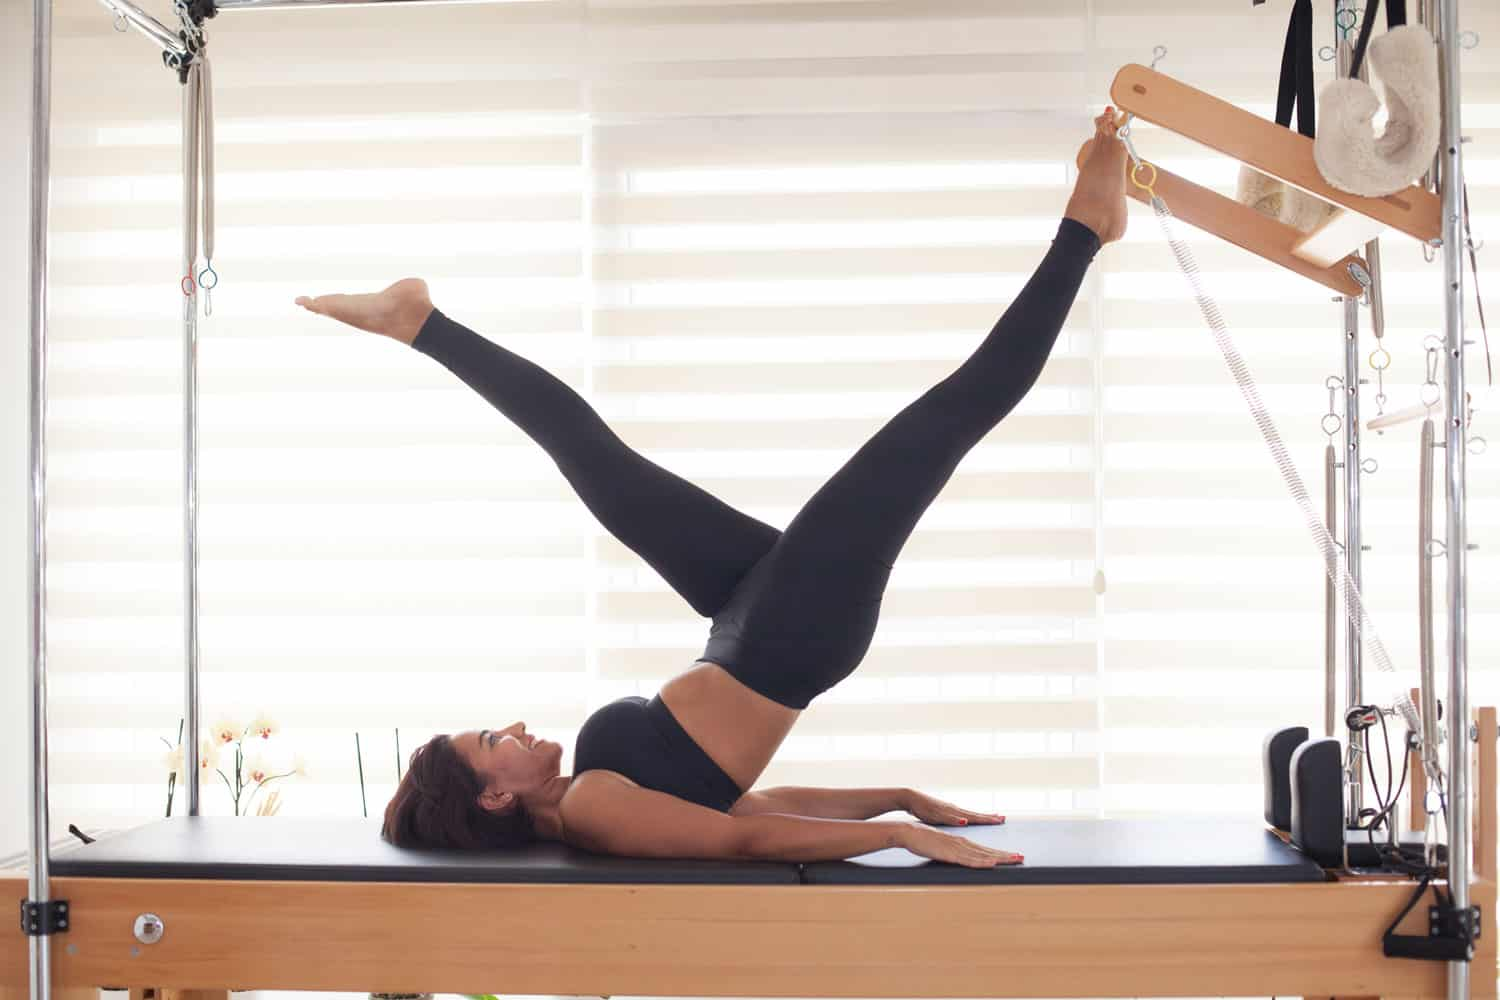 An aerobics instructor doing stretching exercise on her equipment